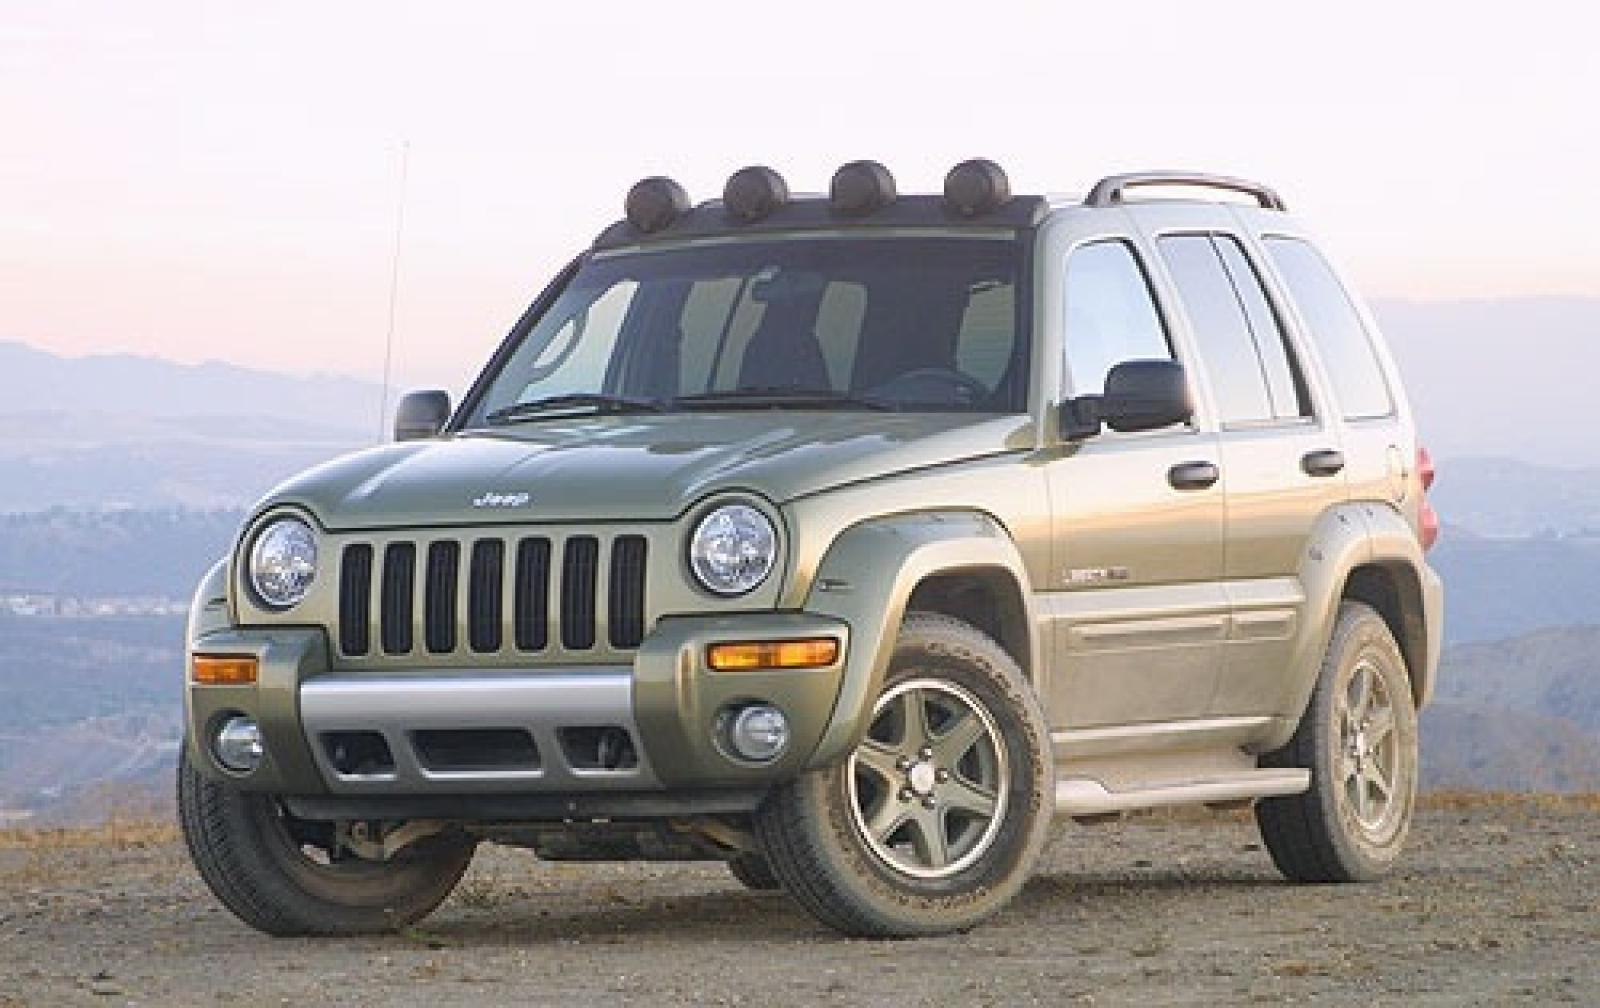 2004 jeep liberty information and photos zombiedrive. Black Bedroom Furniture Sets. Home Design Ideas